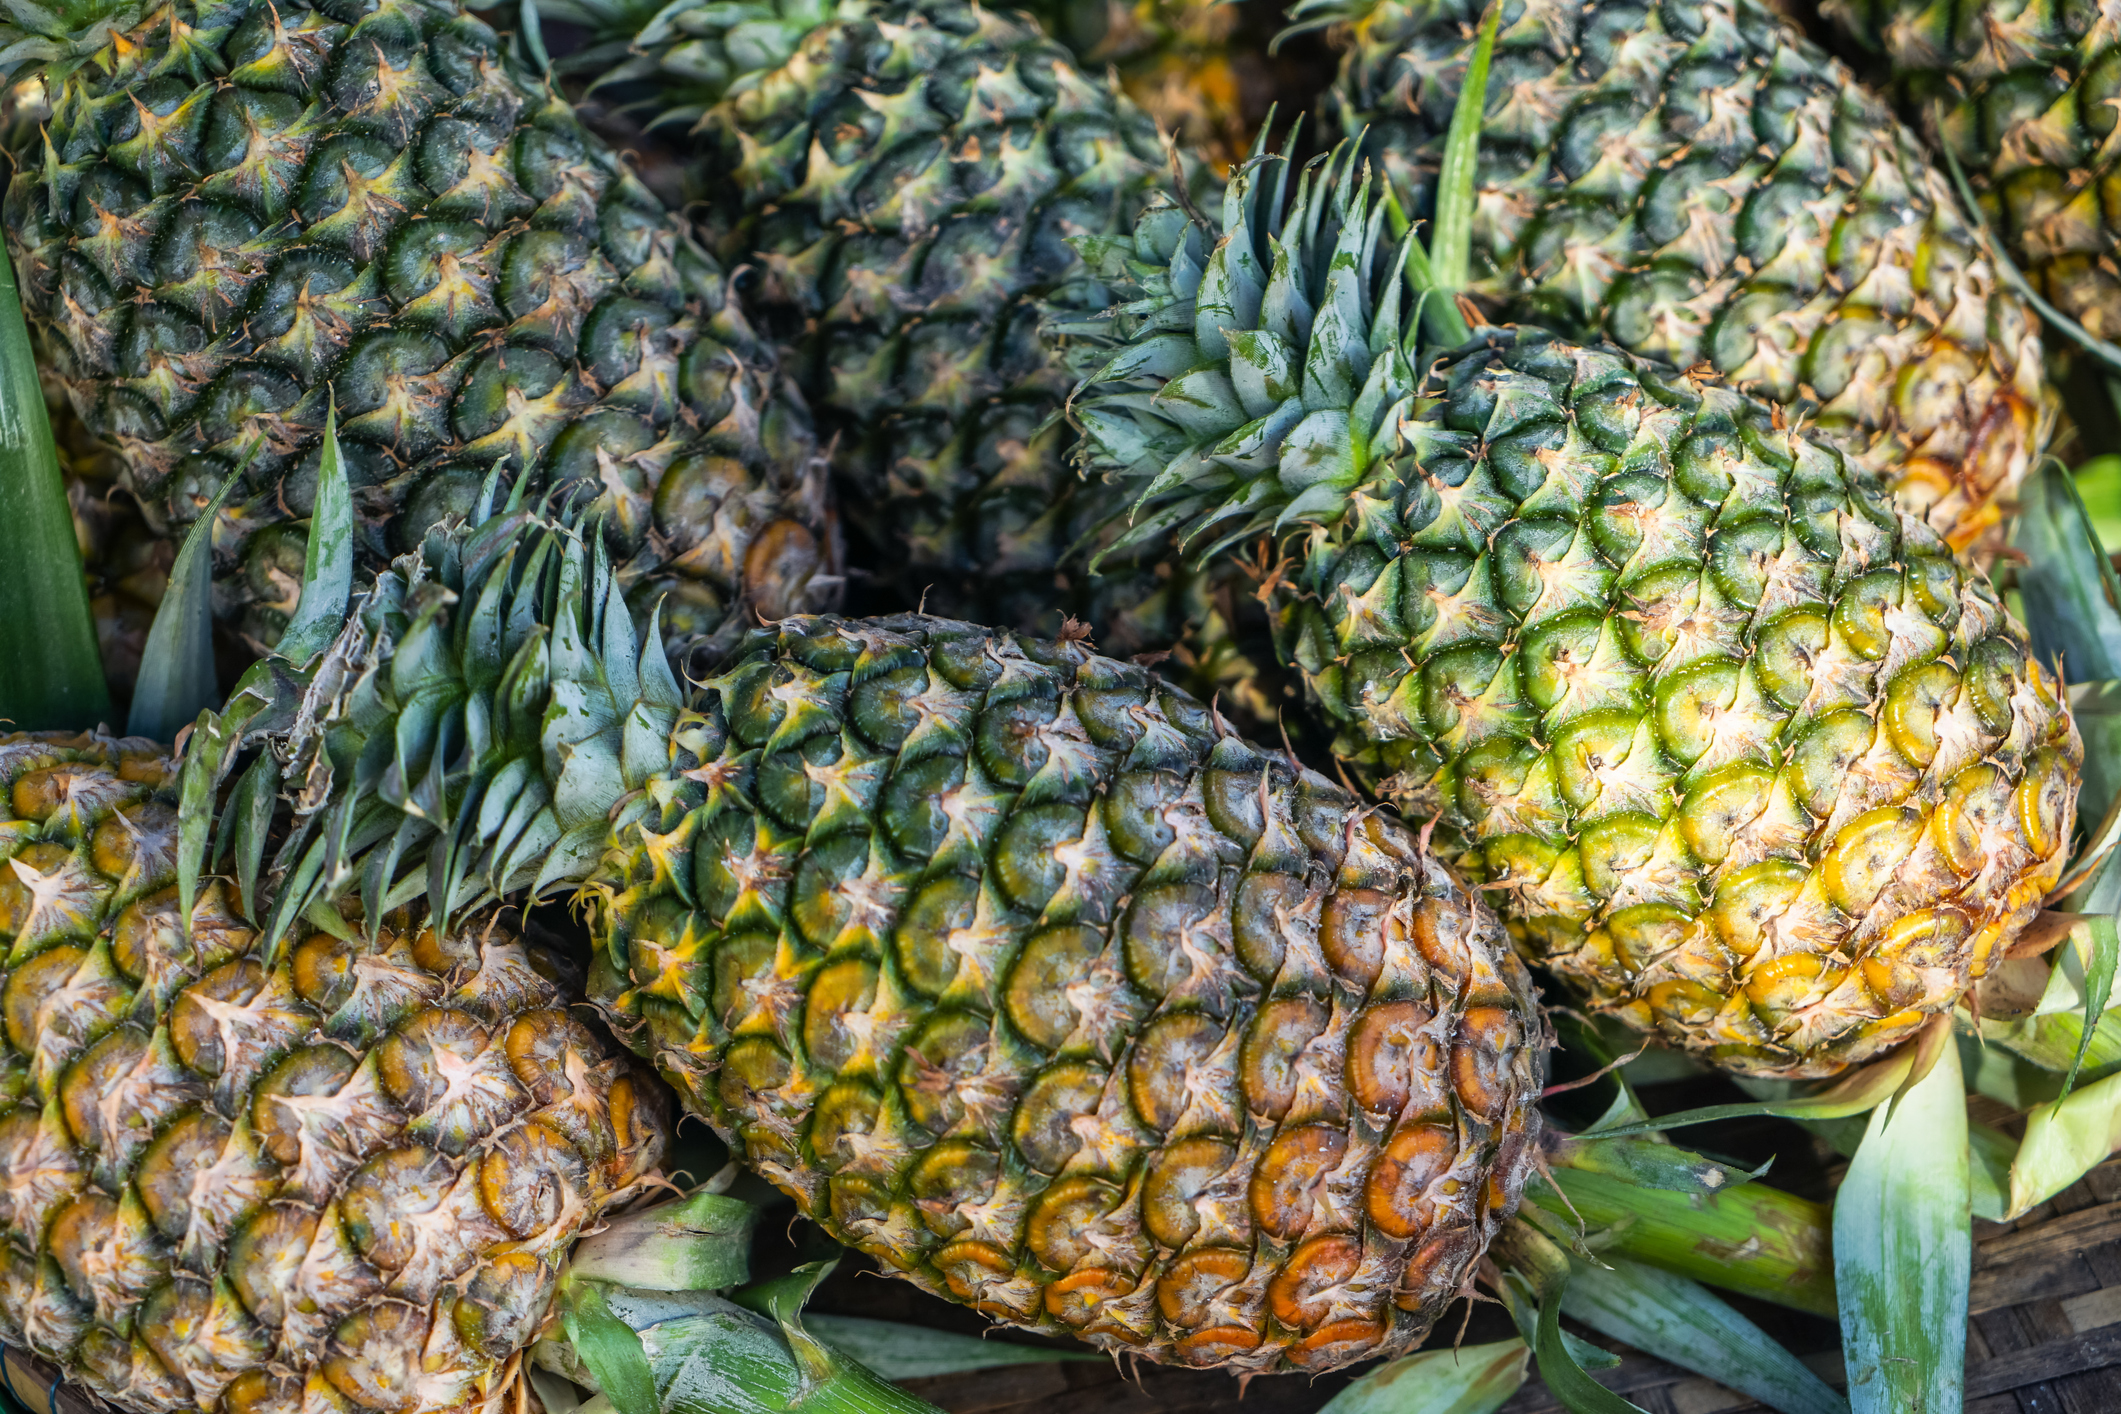 Pineapple Skin - Did you ever have pineapple peel tea?  You have to try it.  And keep those vitamins and antioxidants coming!